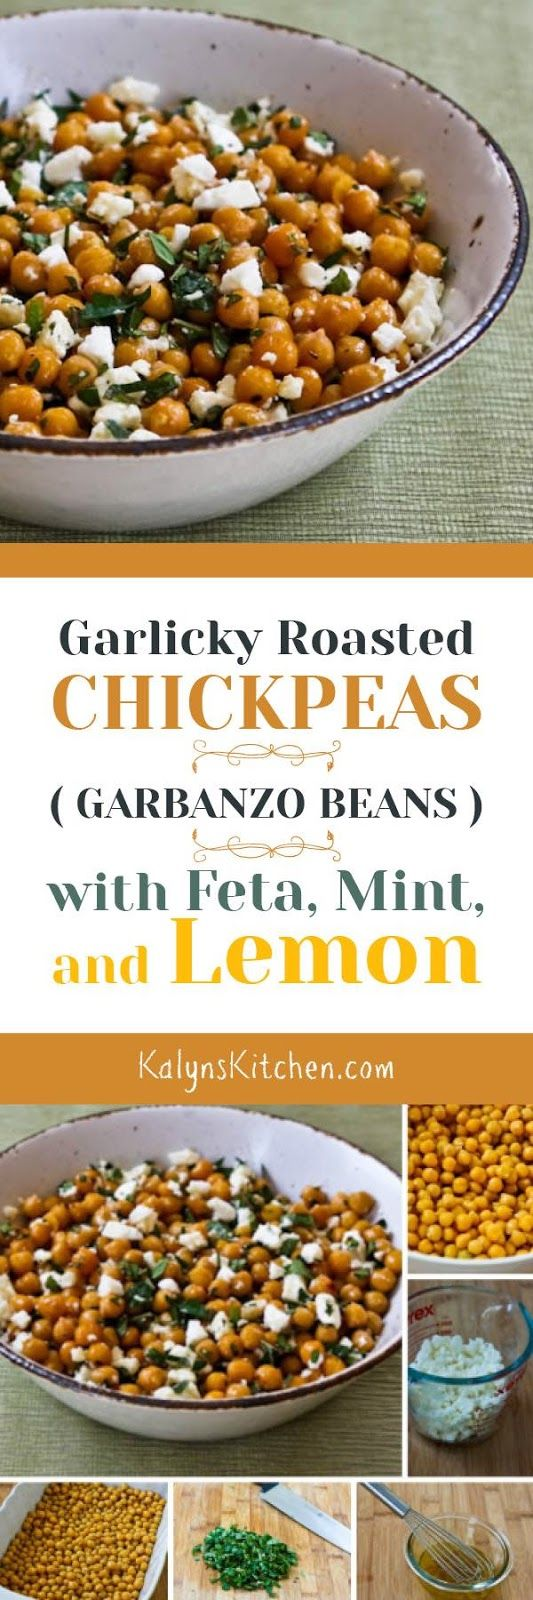 Garlicky Roasted Chickpeas with Feta, Mint, and Lemon are a perfect Meatless Monday dish, and this recipe is also gluten-free and South Beach Diet friendly. [found on KalynsKitchen.com]